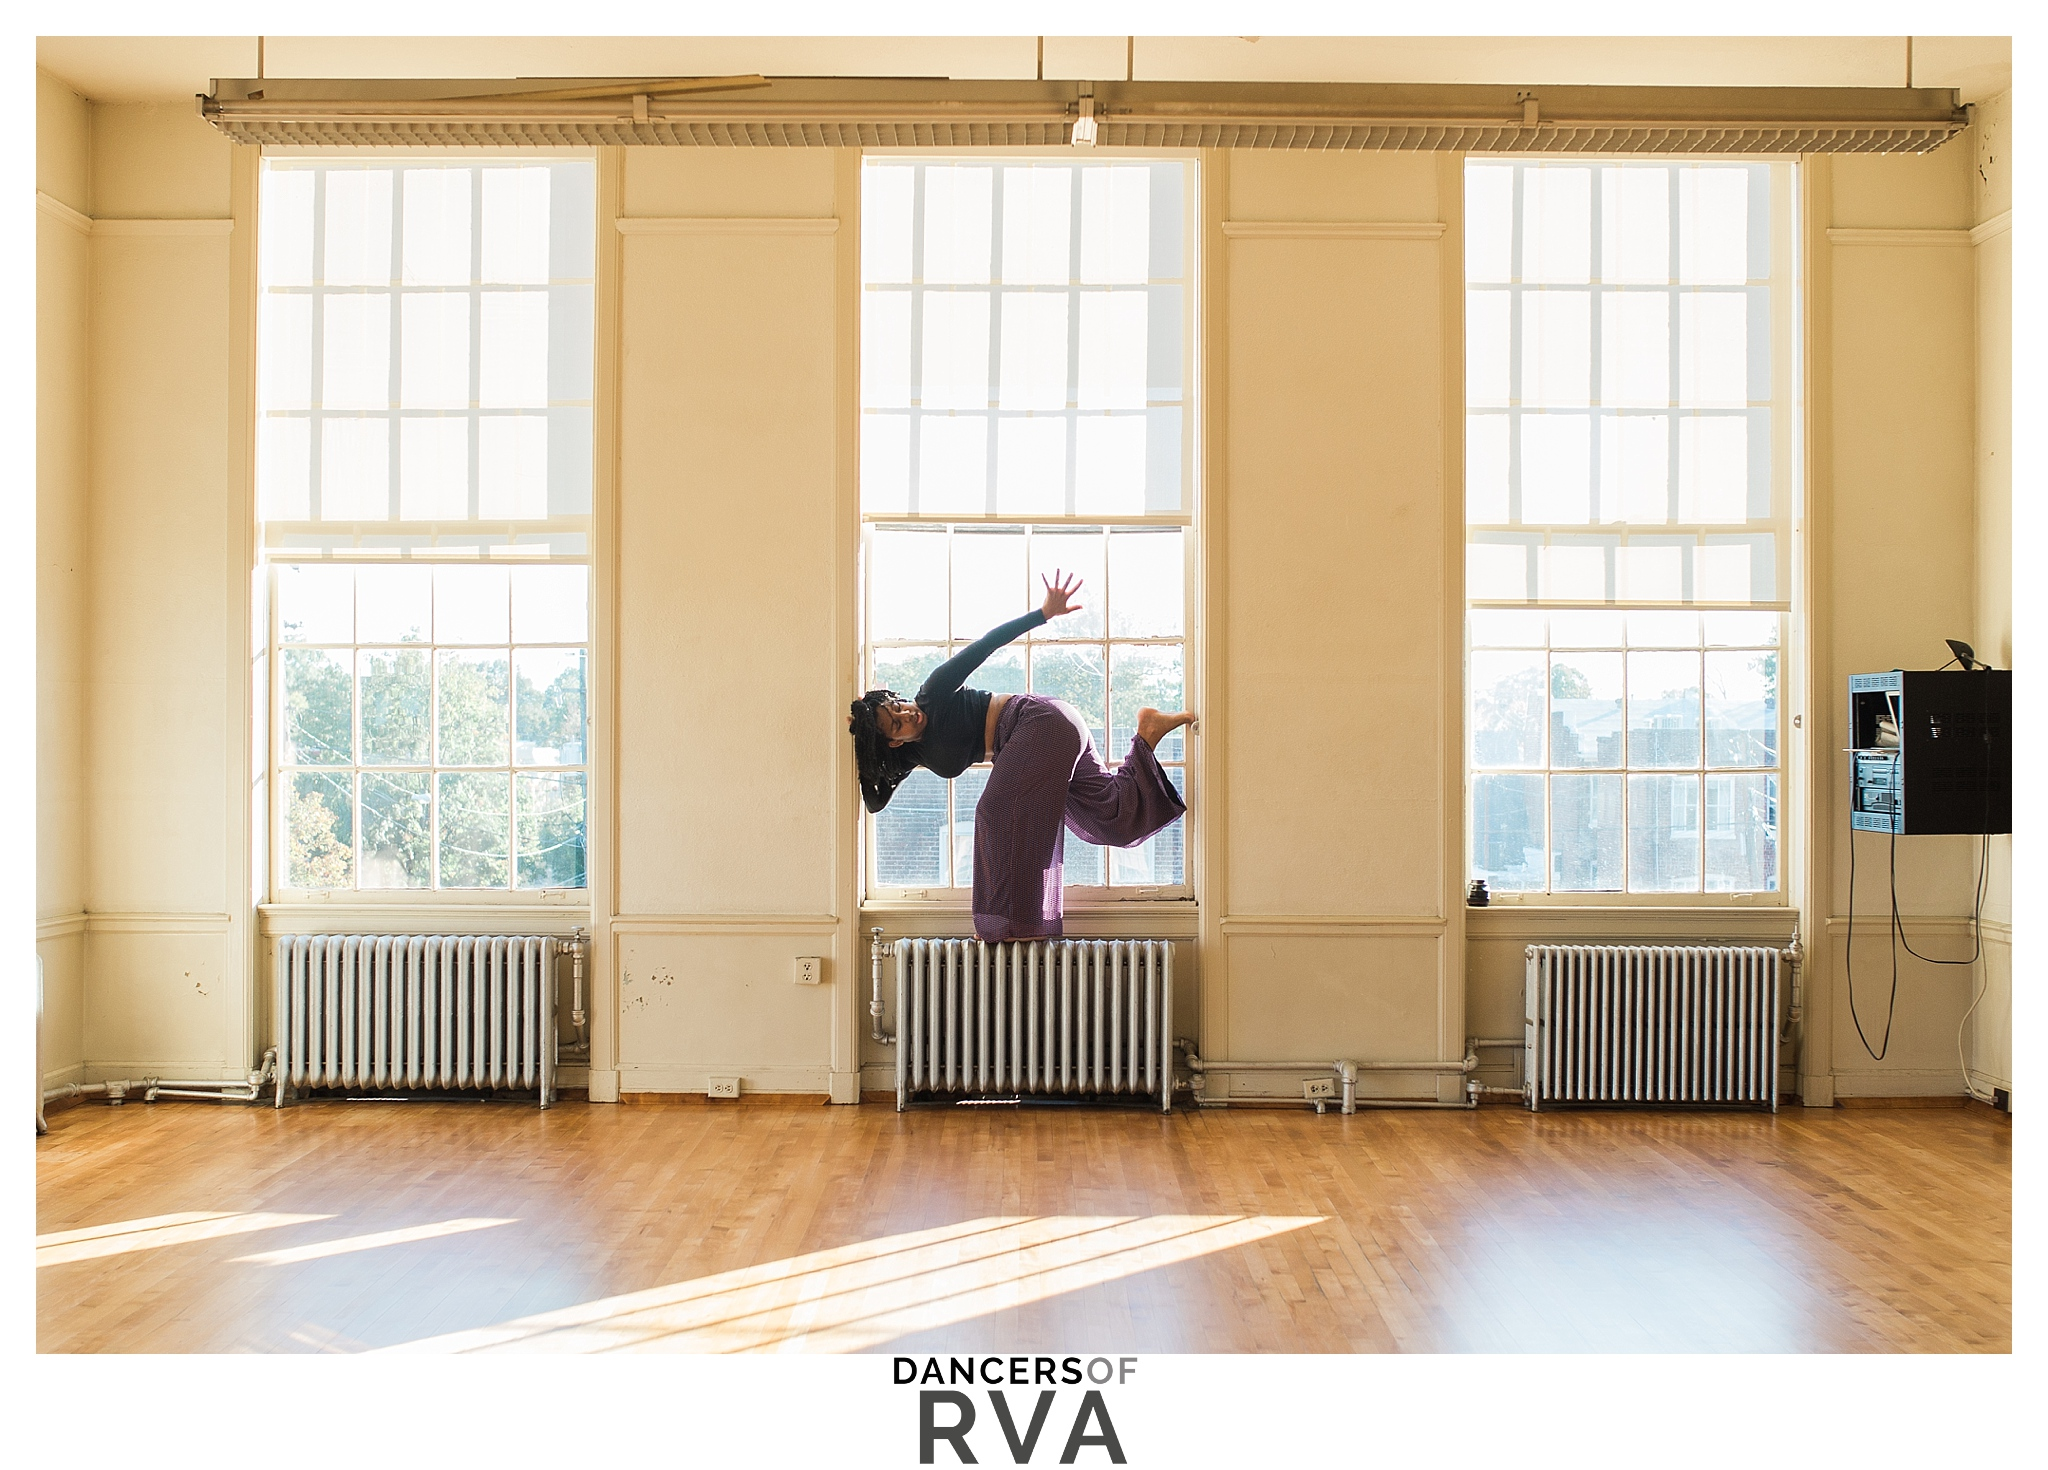 modern dancer in window frame at VCU dance